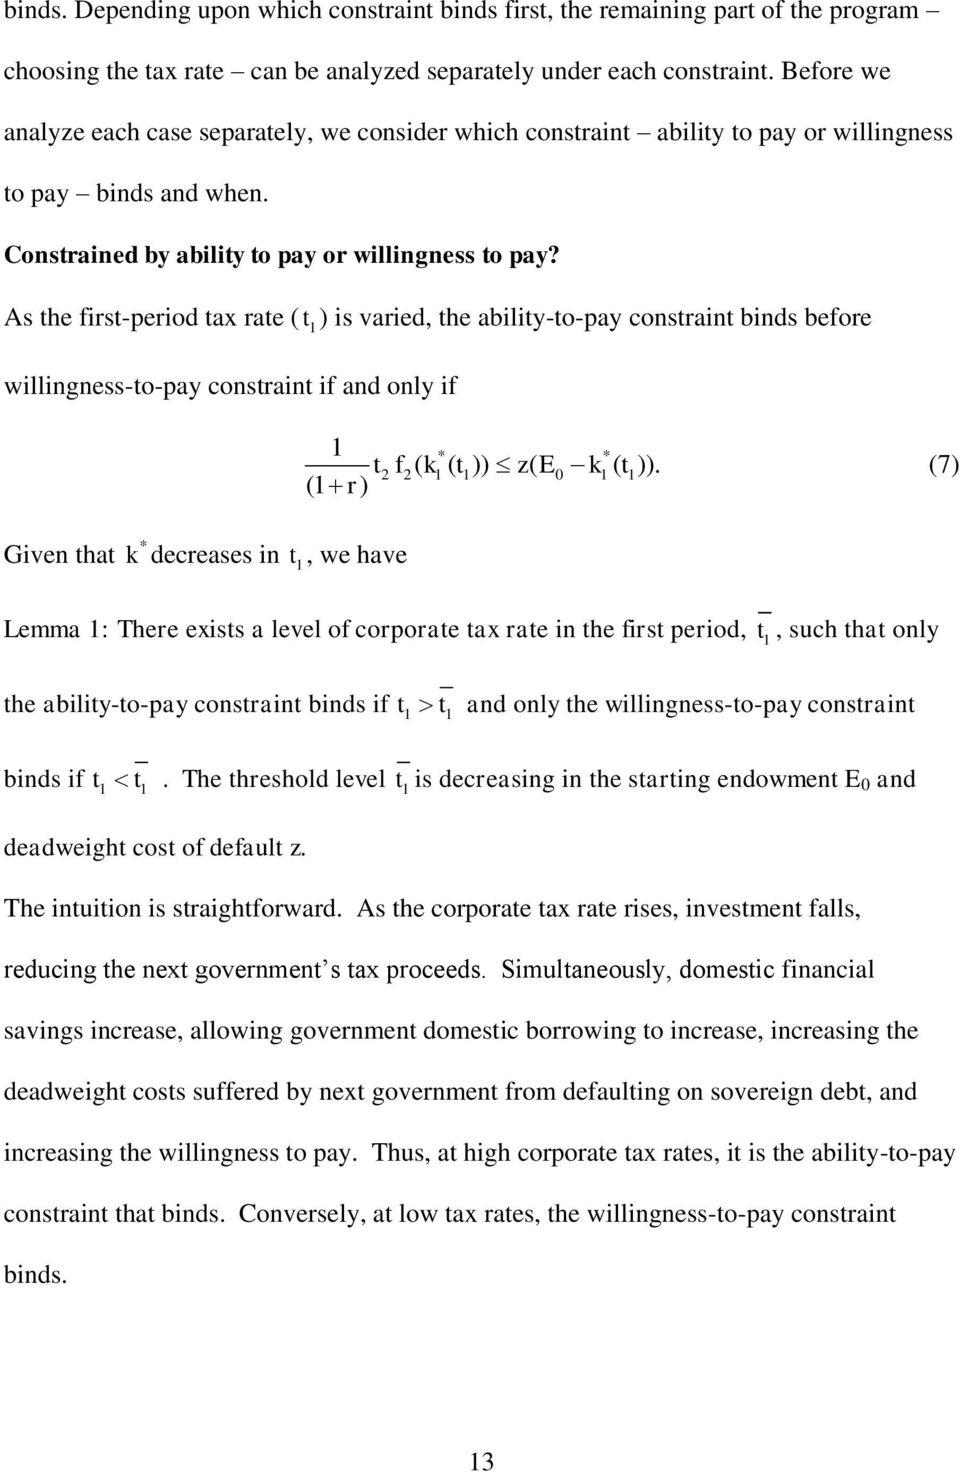 As the first-period tax rate ( t ) is varied, the ability-to-pay constraint binds before willingness-to-pay constraint if and only if 2 2( ( )) ( ( )).